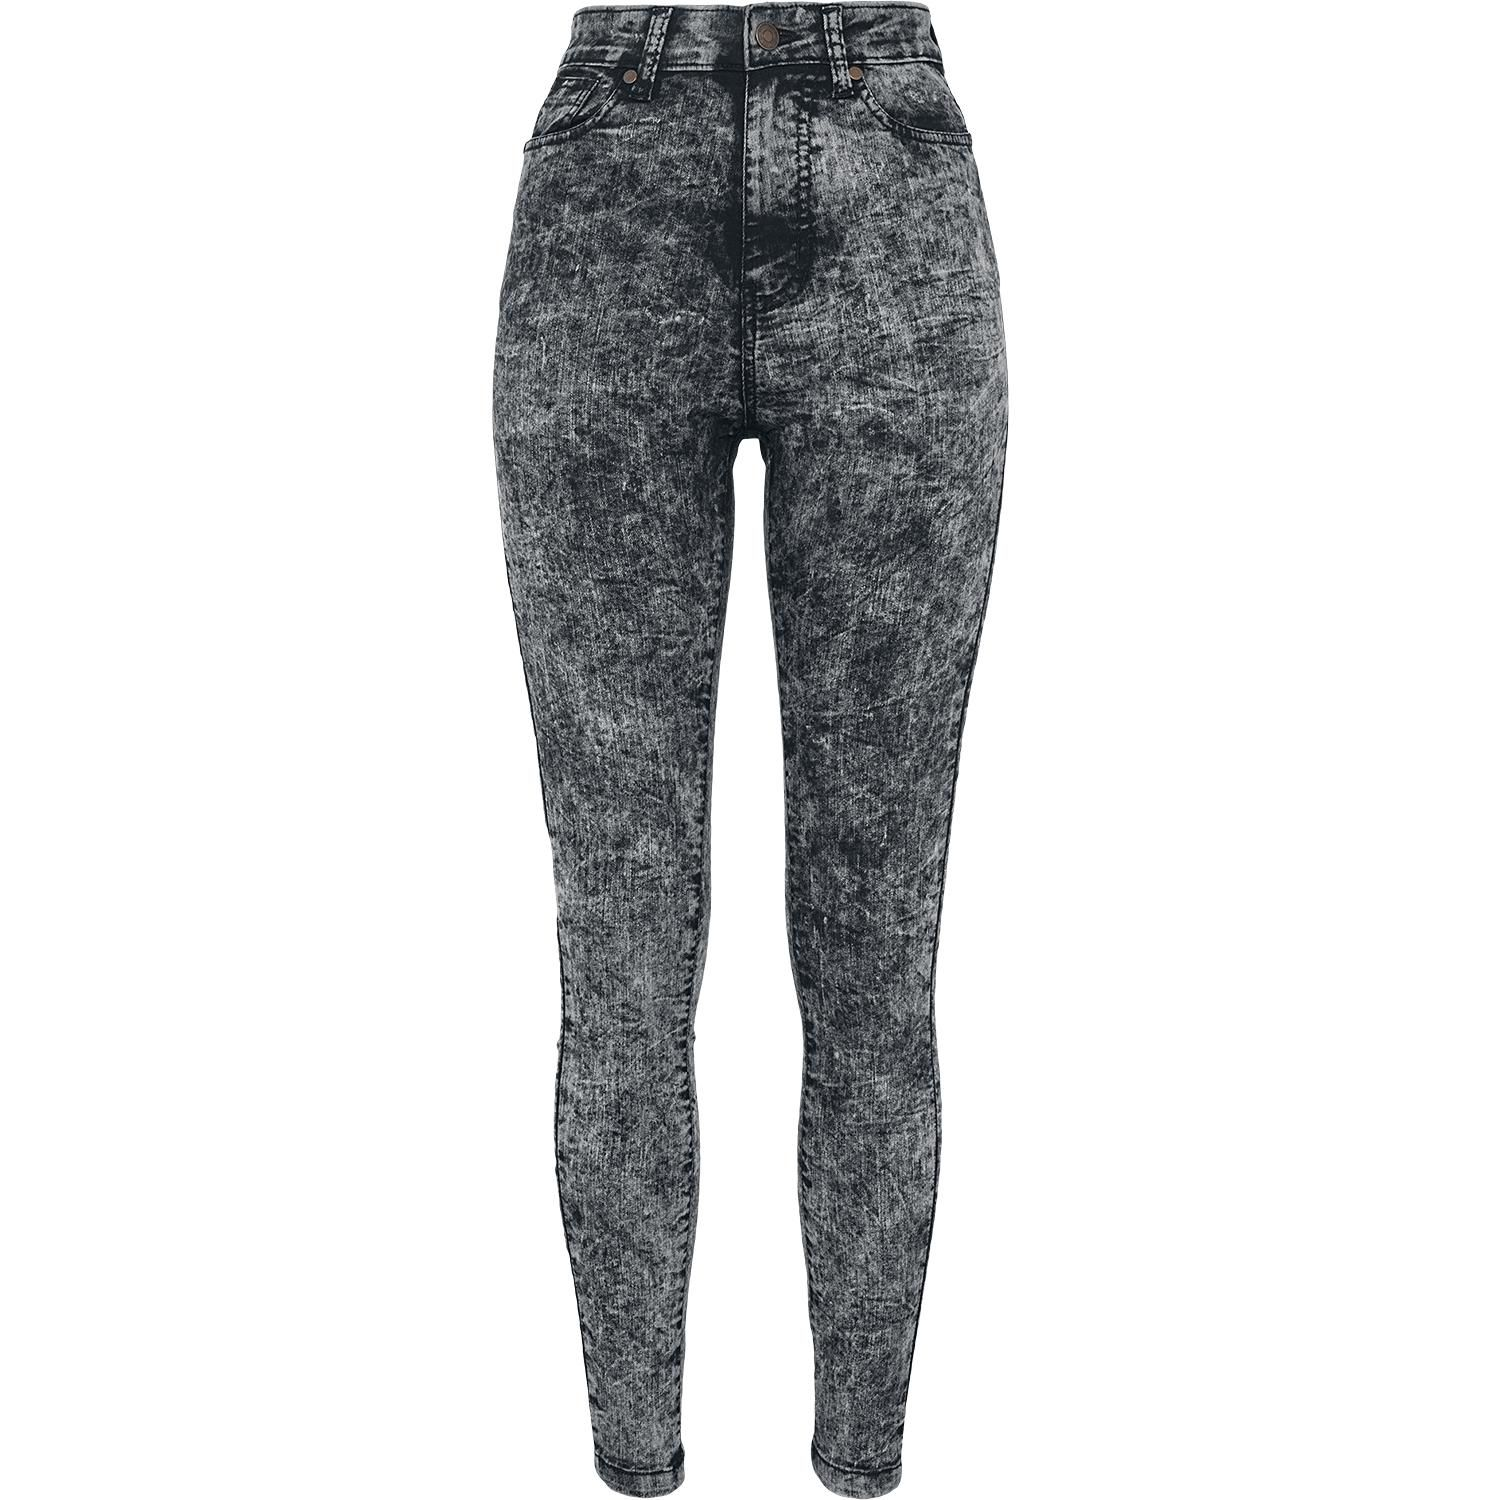 Ladies High Waist Denim Skinny Pants by Urban Classics